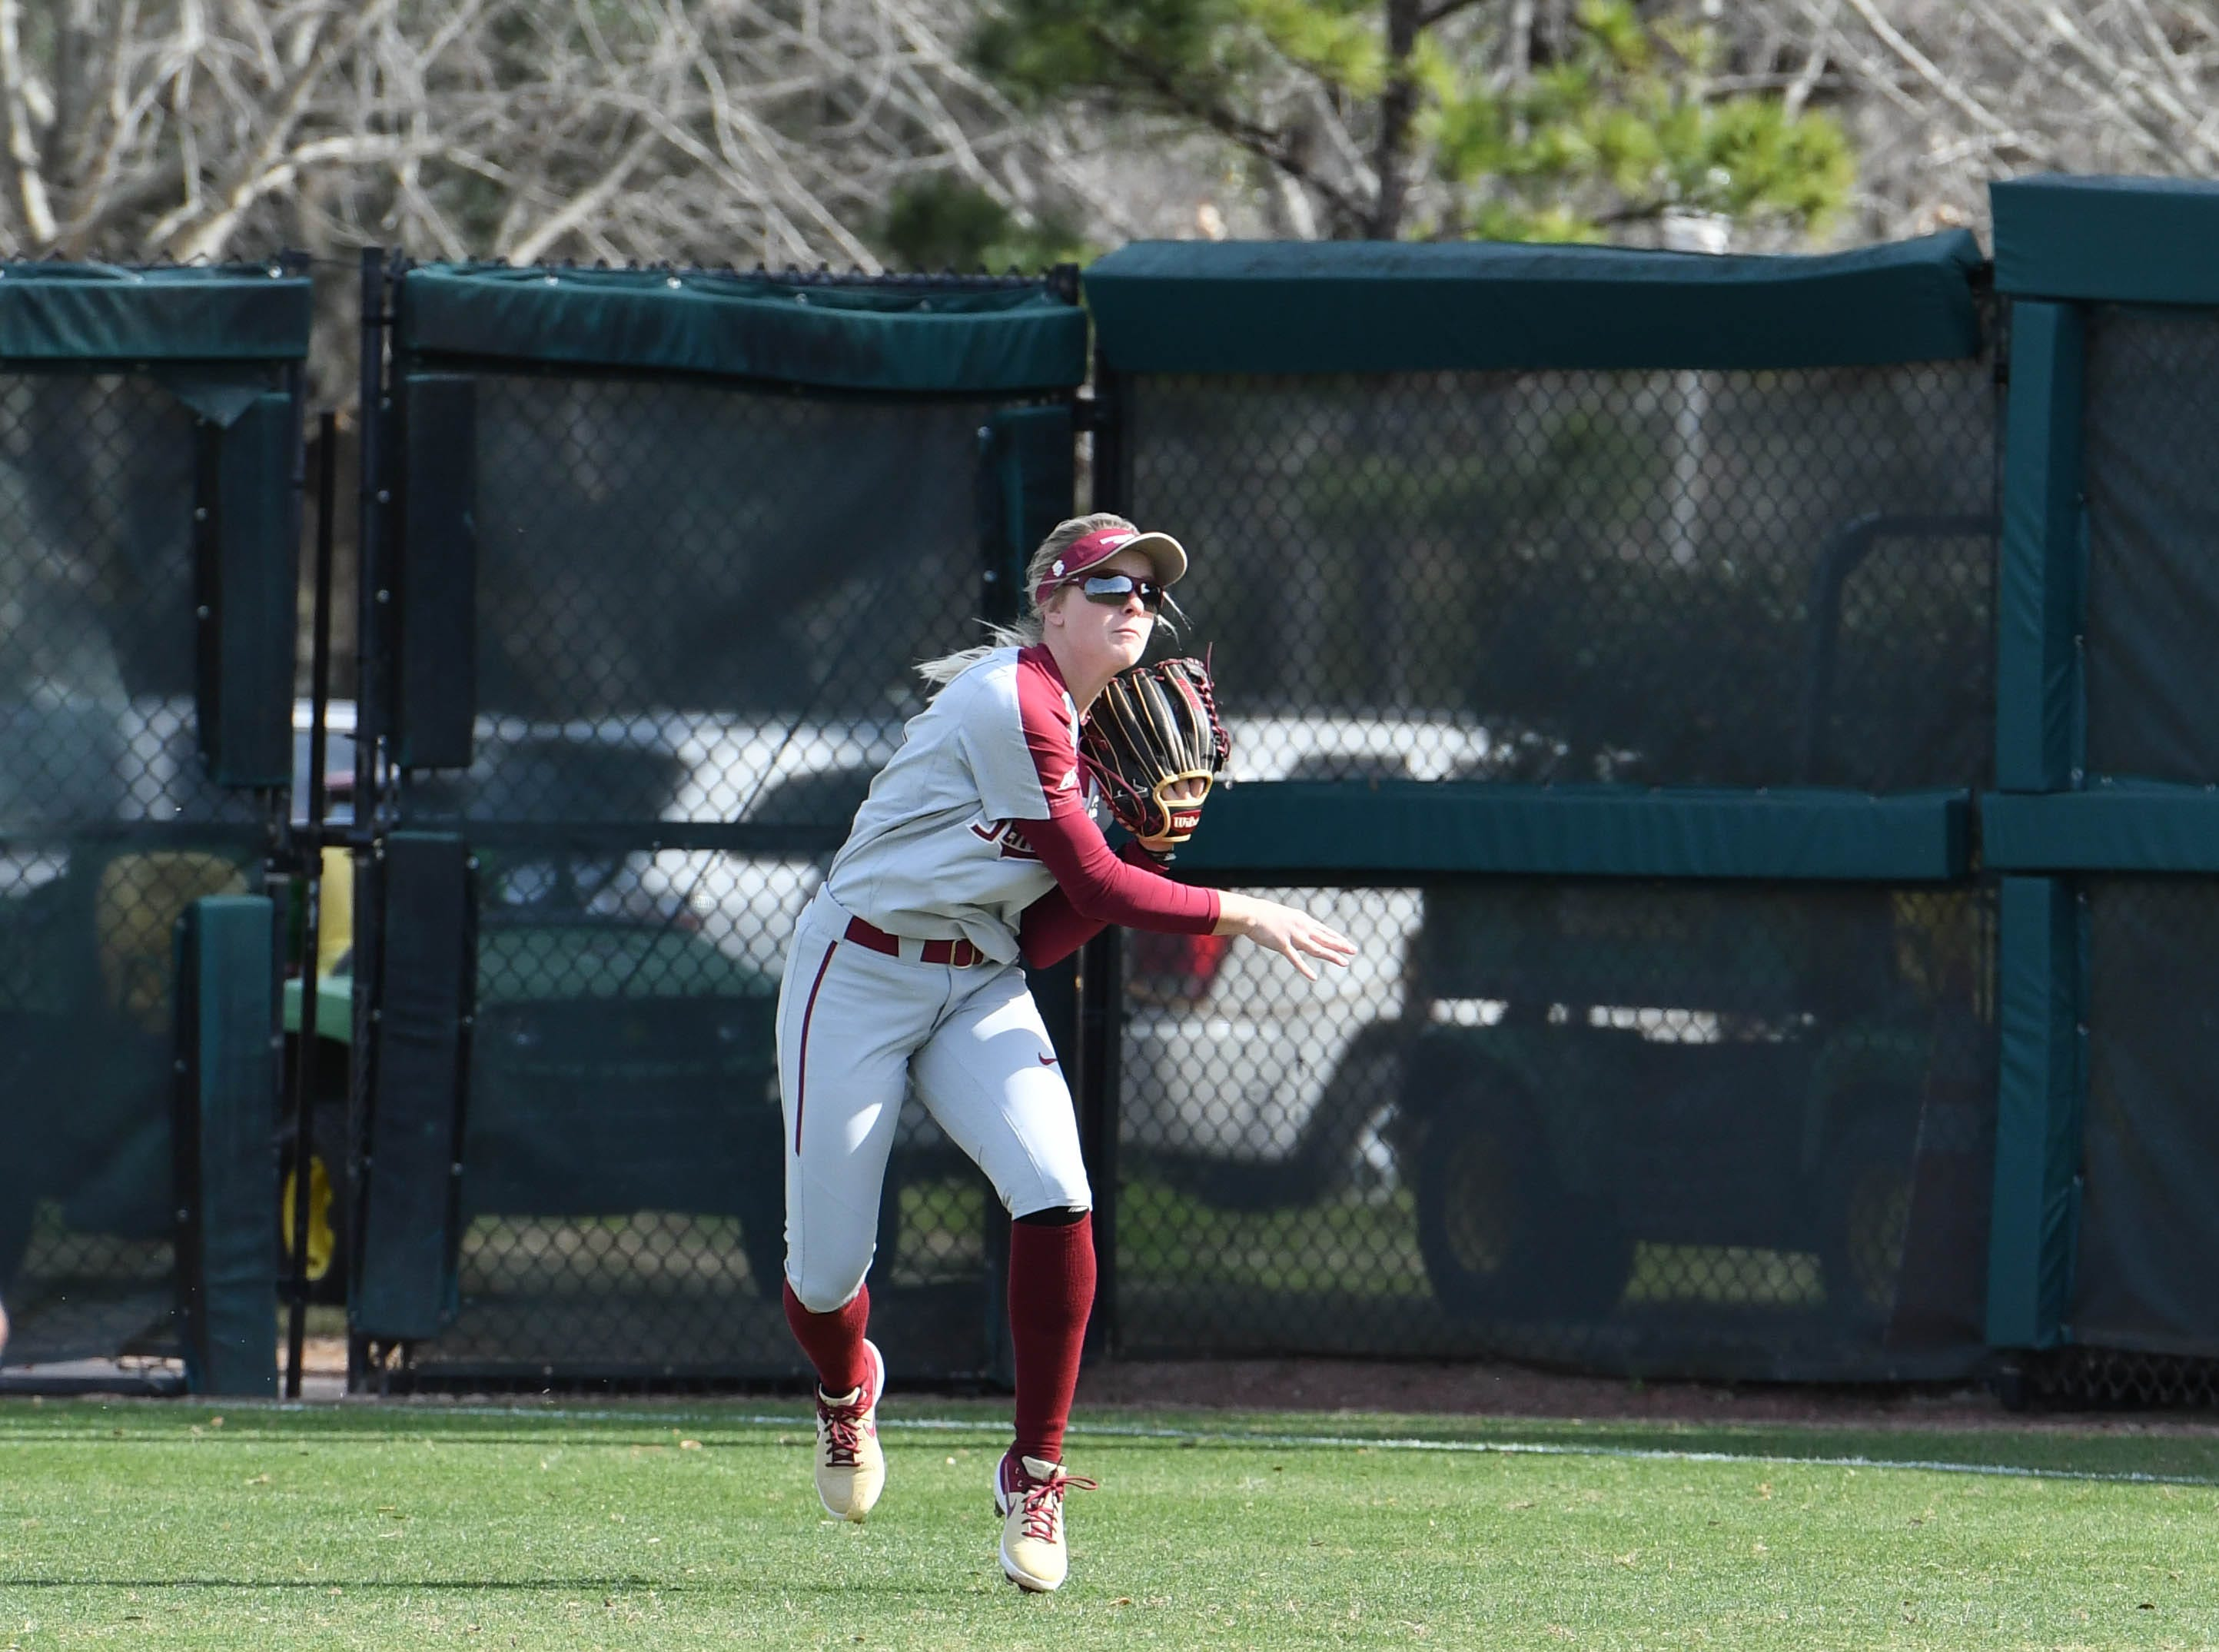 FSU freshman outfielder Makinzy Herzog (21) throwing the ball into the infield in the second inning of FSU's game against UNCG at Joanne Graf field on February 9, 2019.